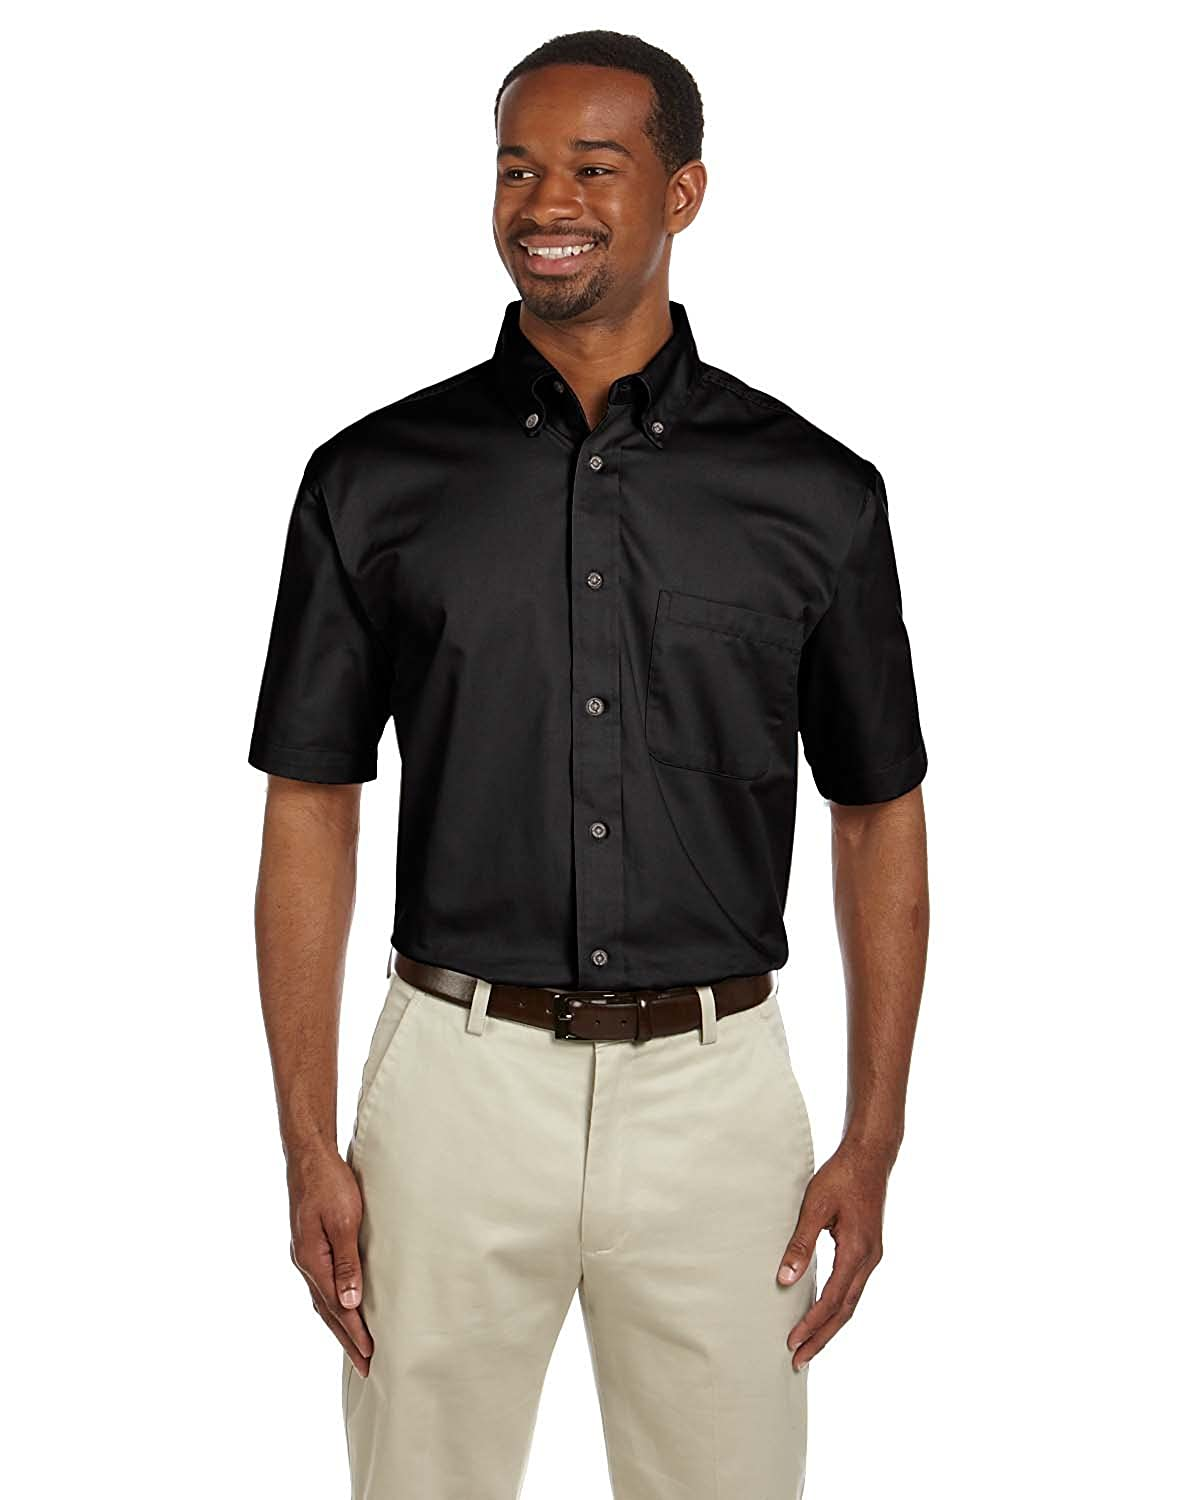 Harriton Mens Short-Sleeve Twill Shirt with Stain-Release M500S BLACK 2XL